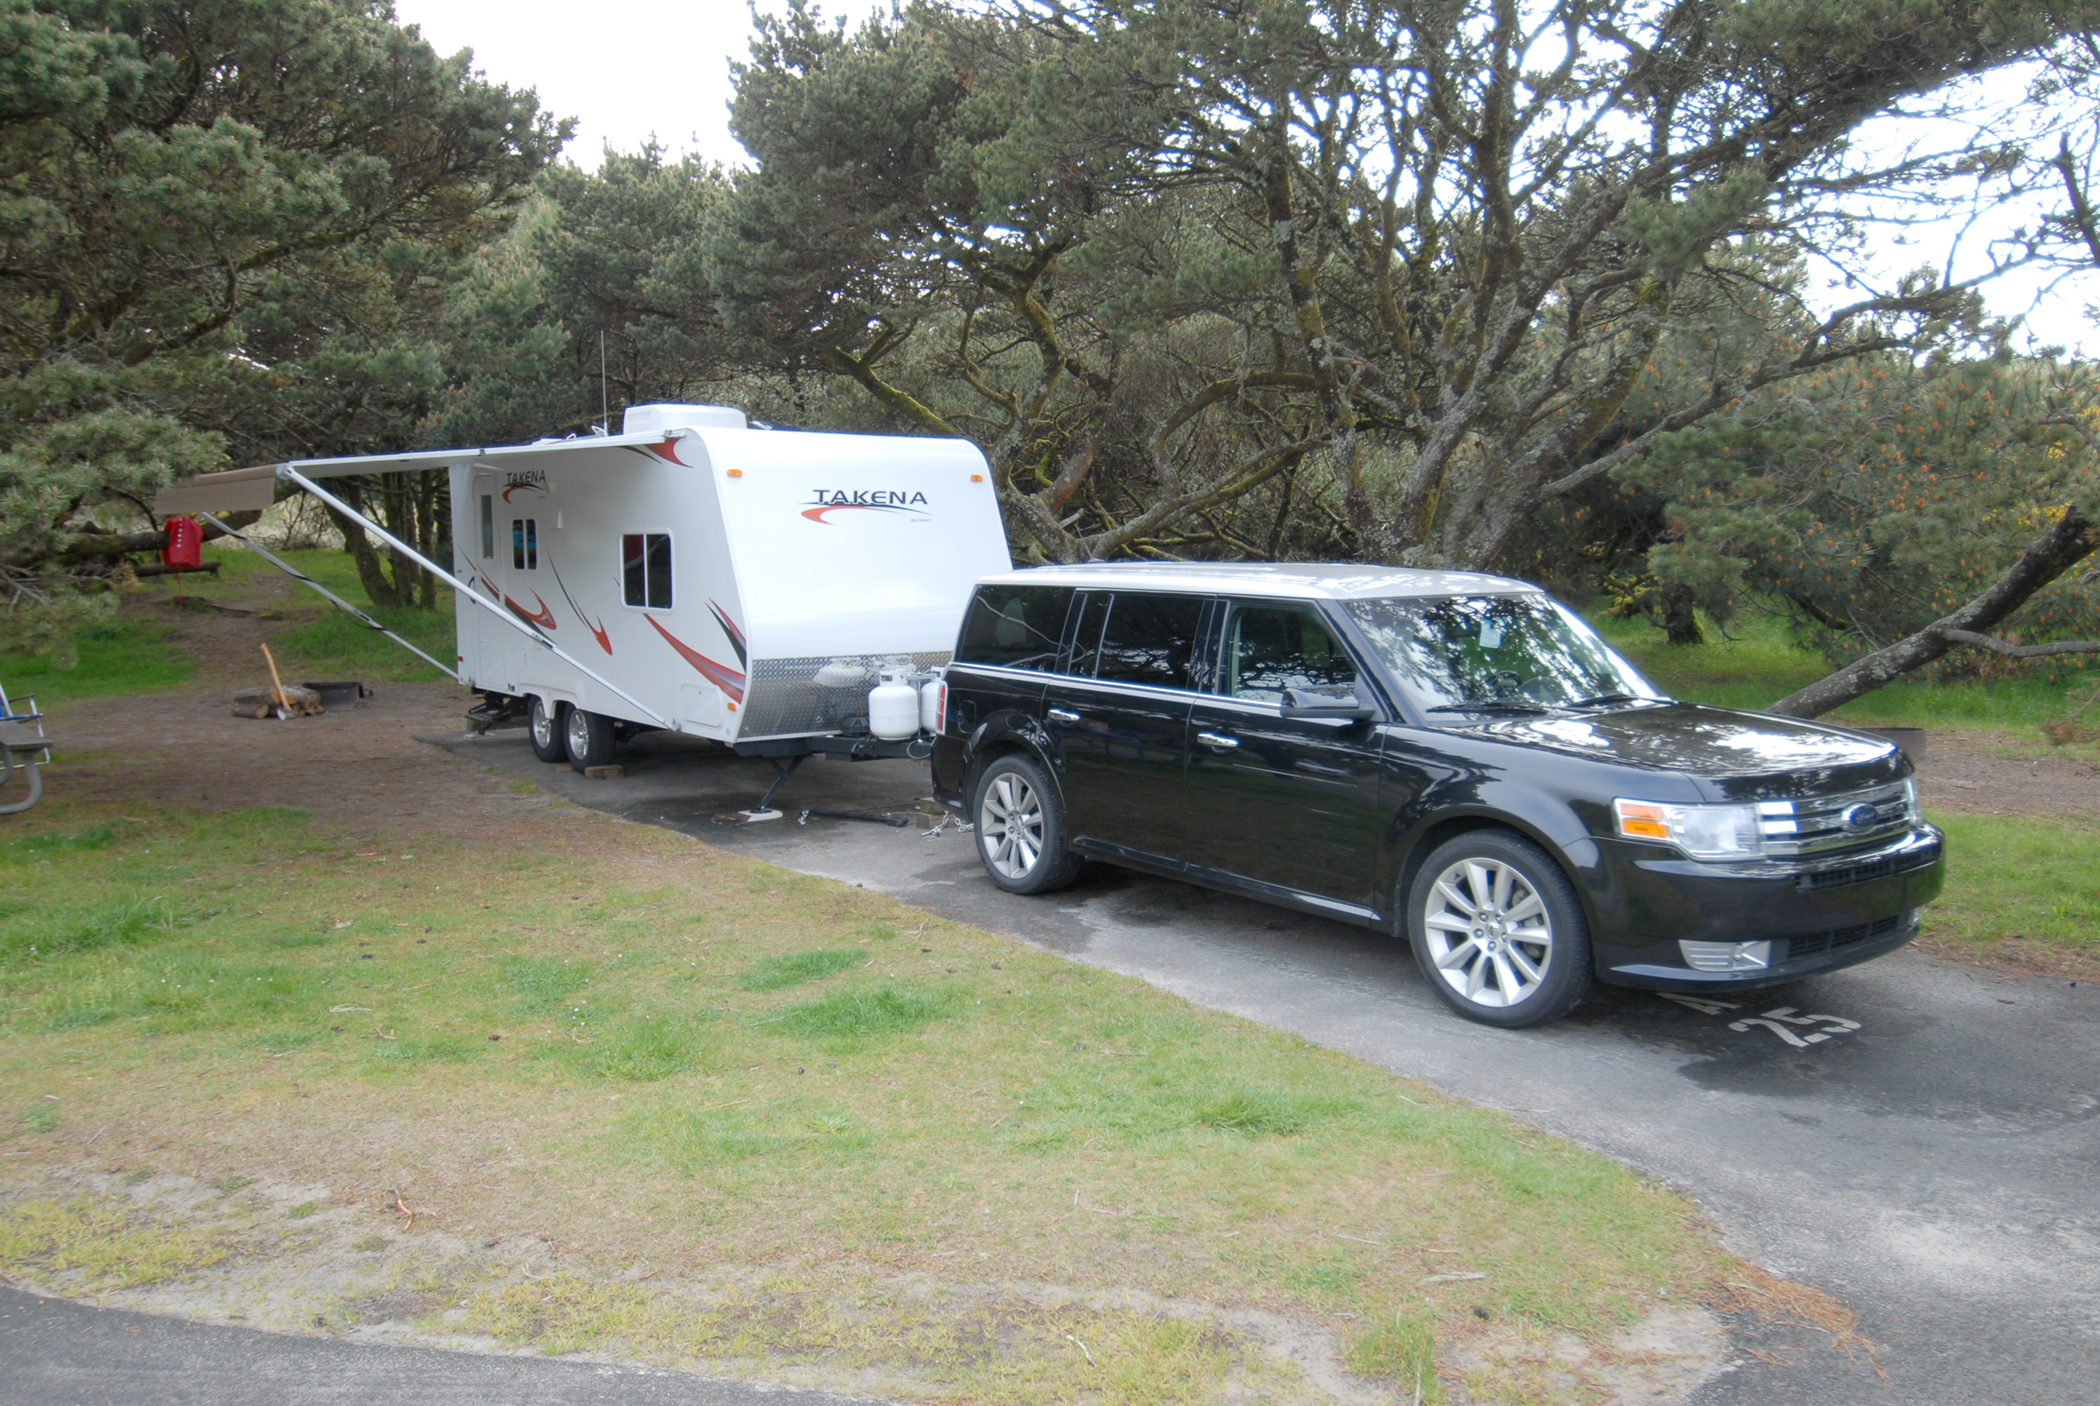 2010 Ford Flex Tows Recreational Vehicle Chalet Takena